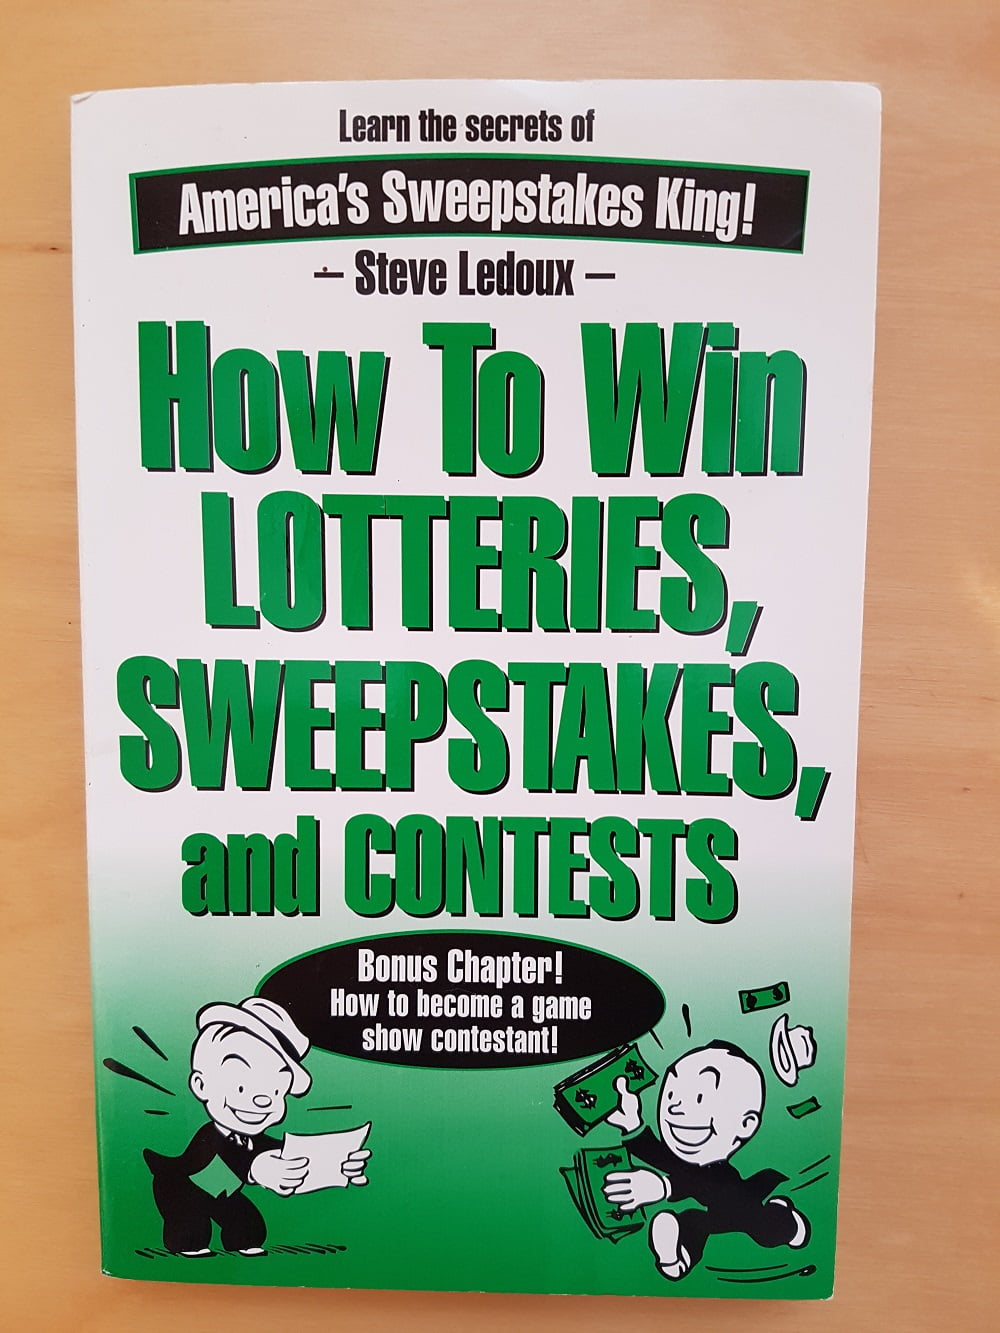 How To Win Lotteries. Sweepstakes, and Contests.